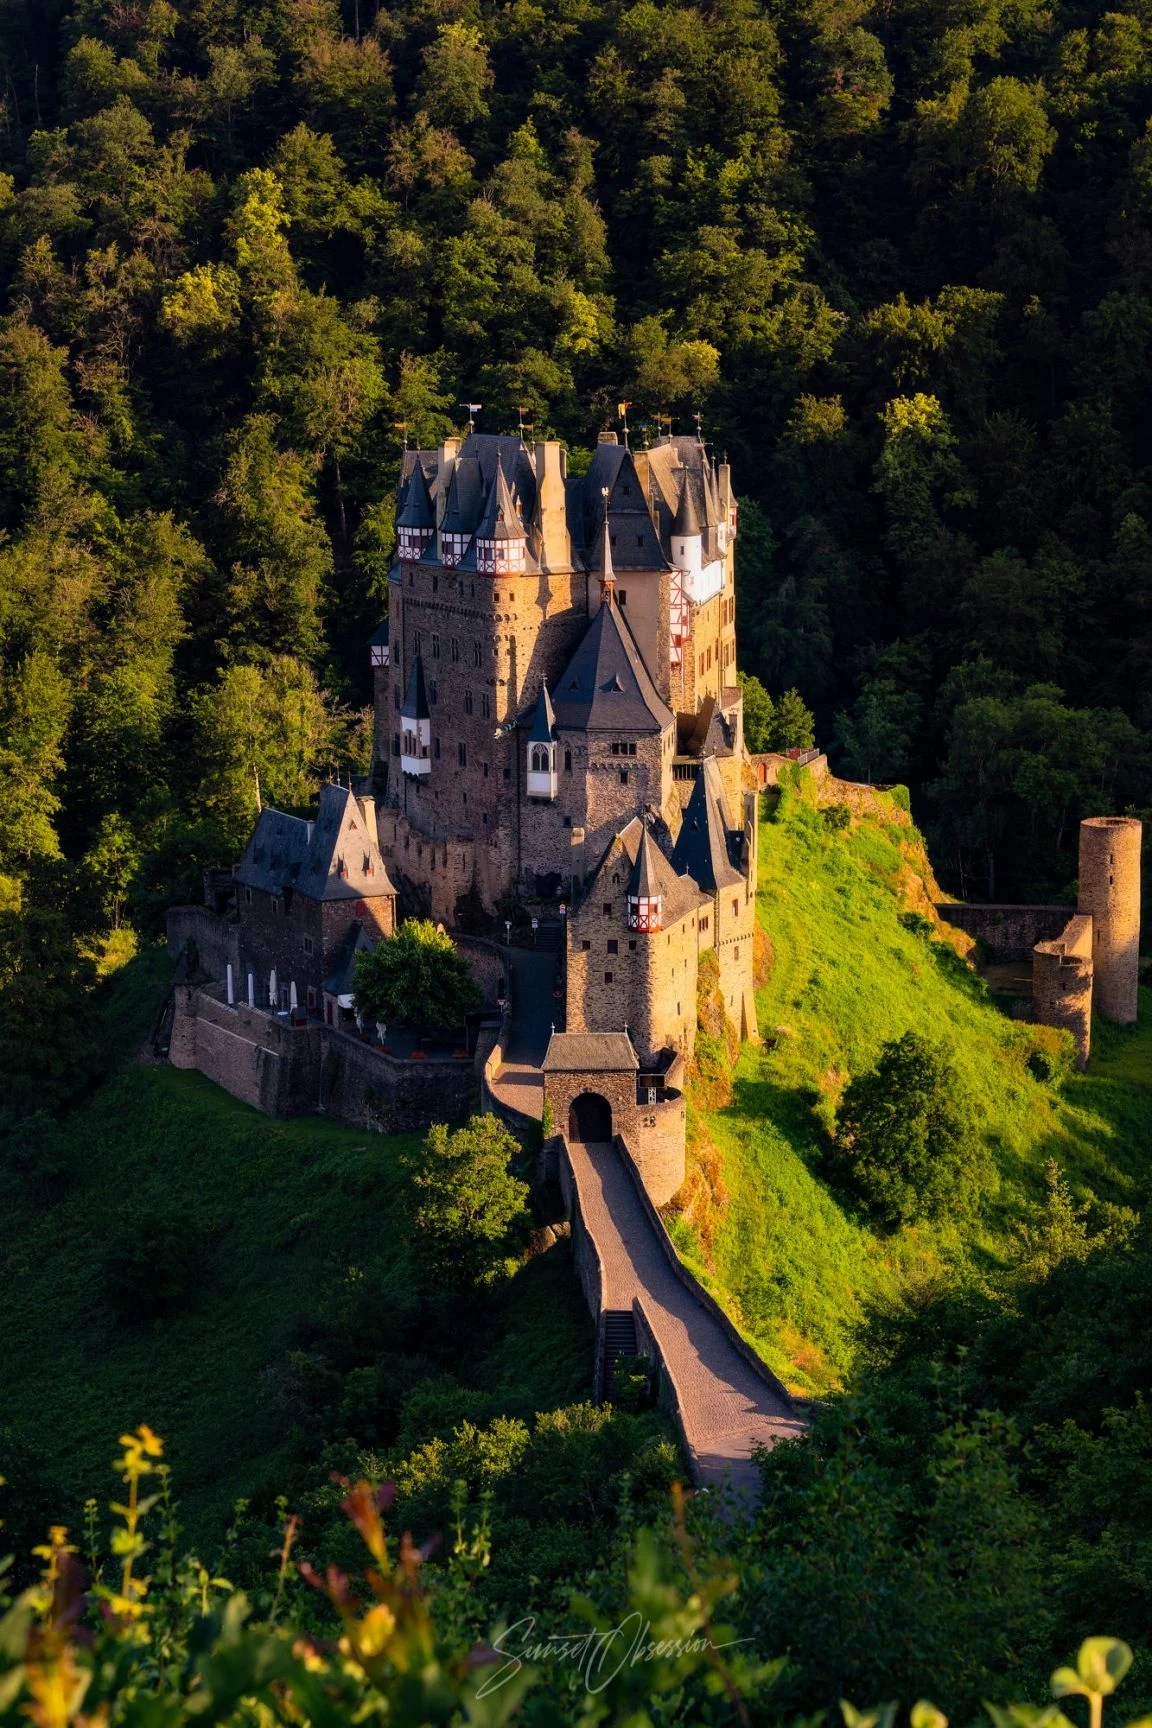 Majestic Burg Eltz in the summer afternoon, Germany